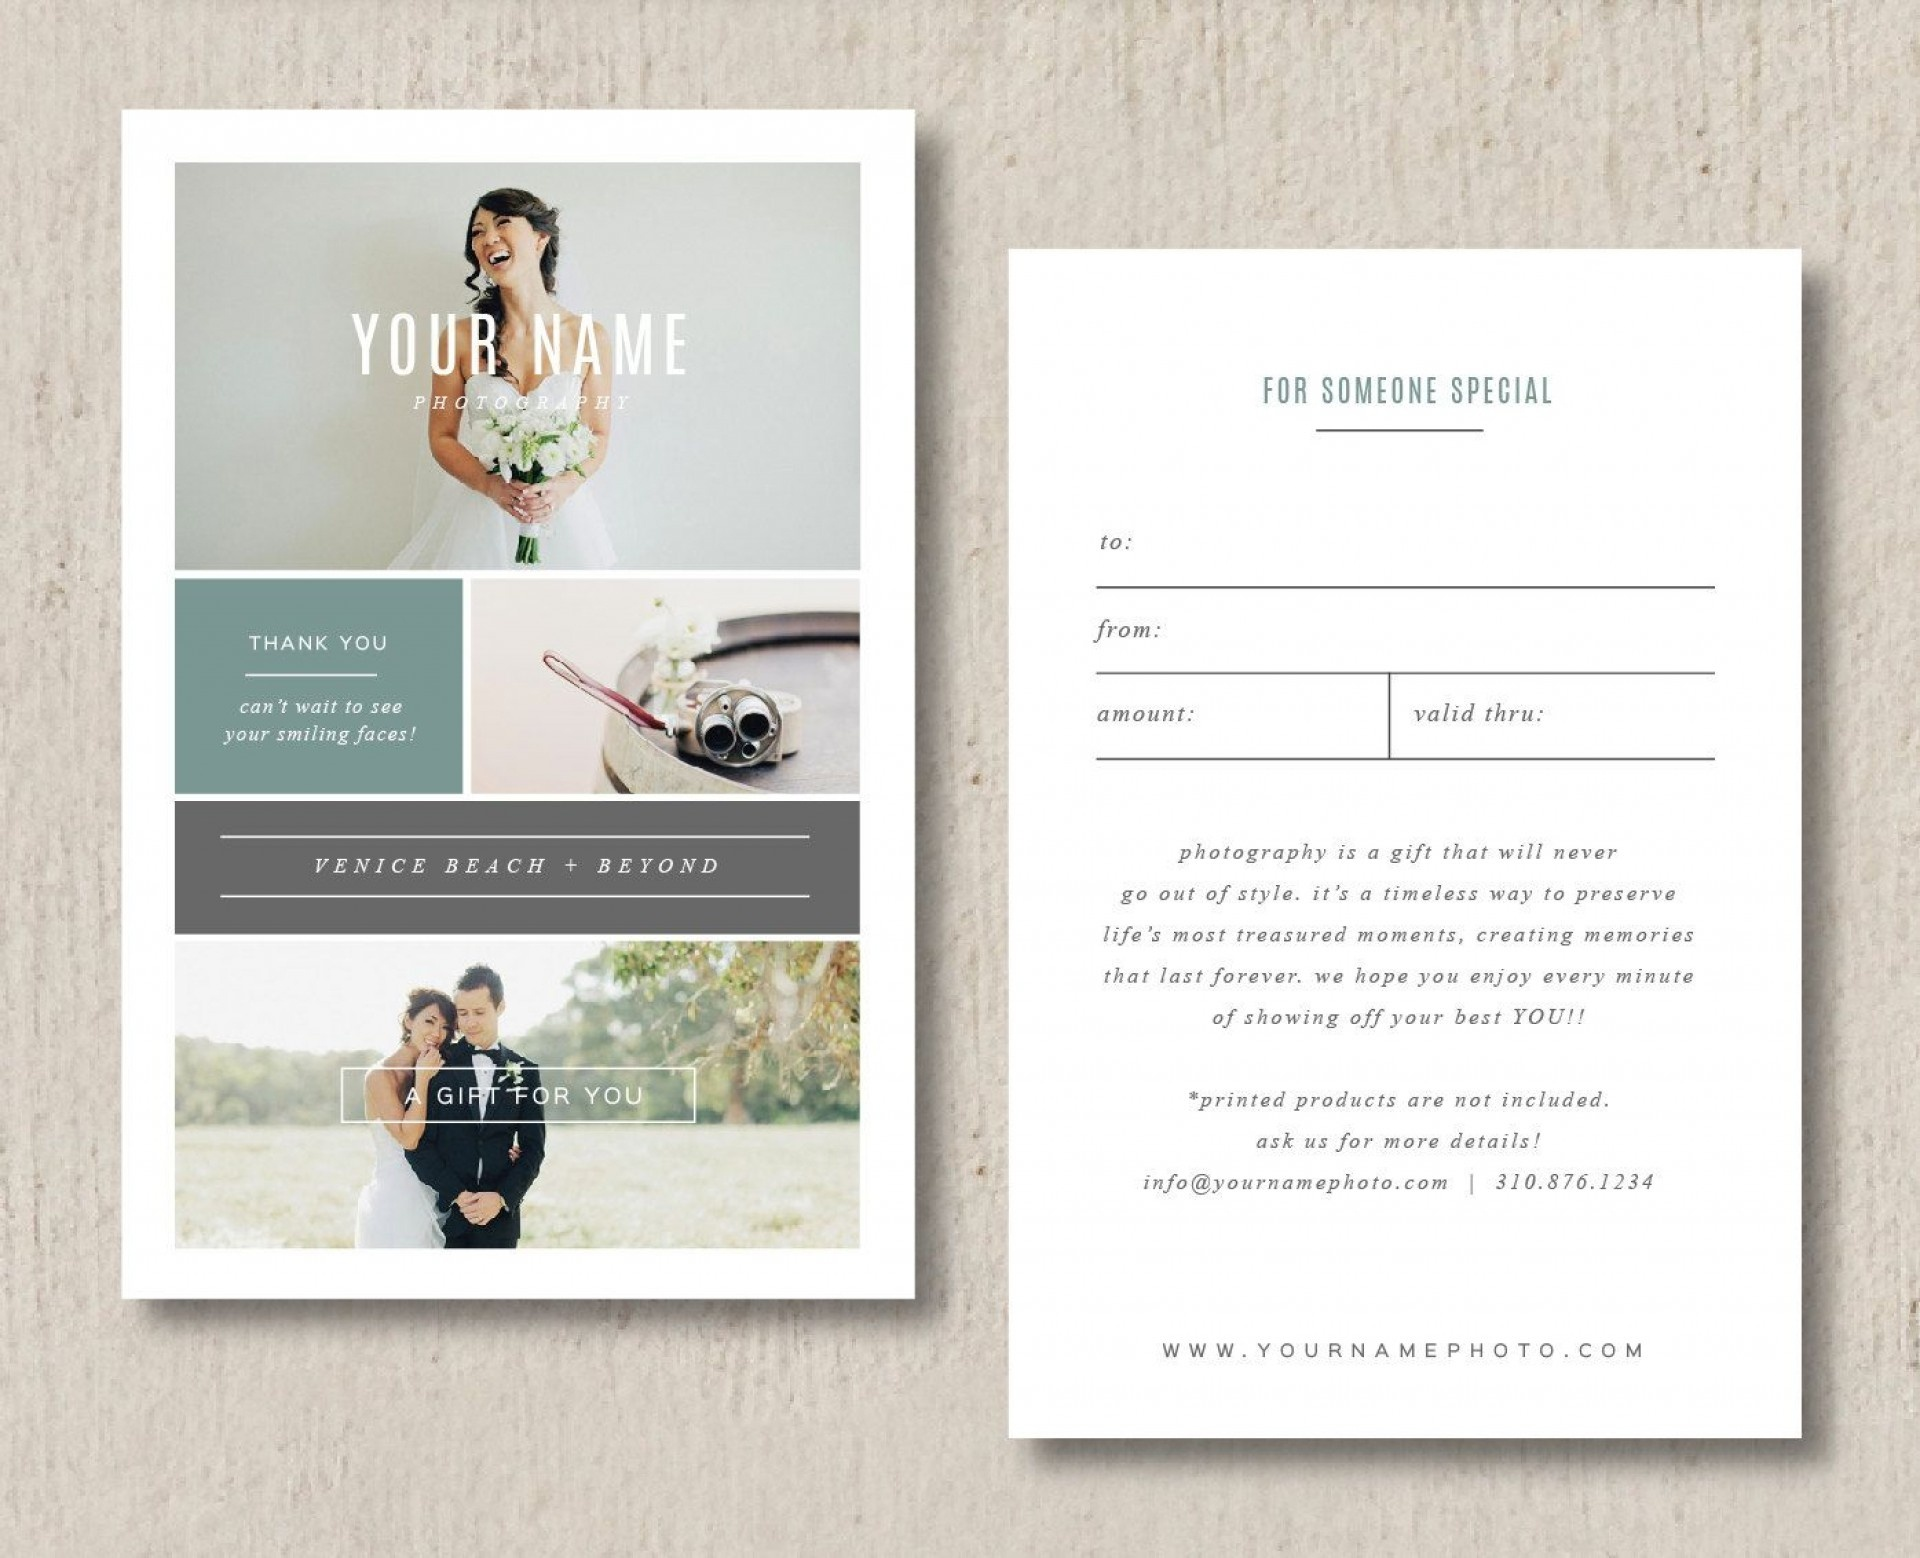 023 Photography Gift Certificate Template Astounding Ideas Free Etsy - Free Printable Photography Gift Certificate Template